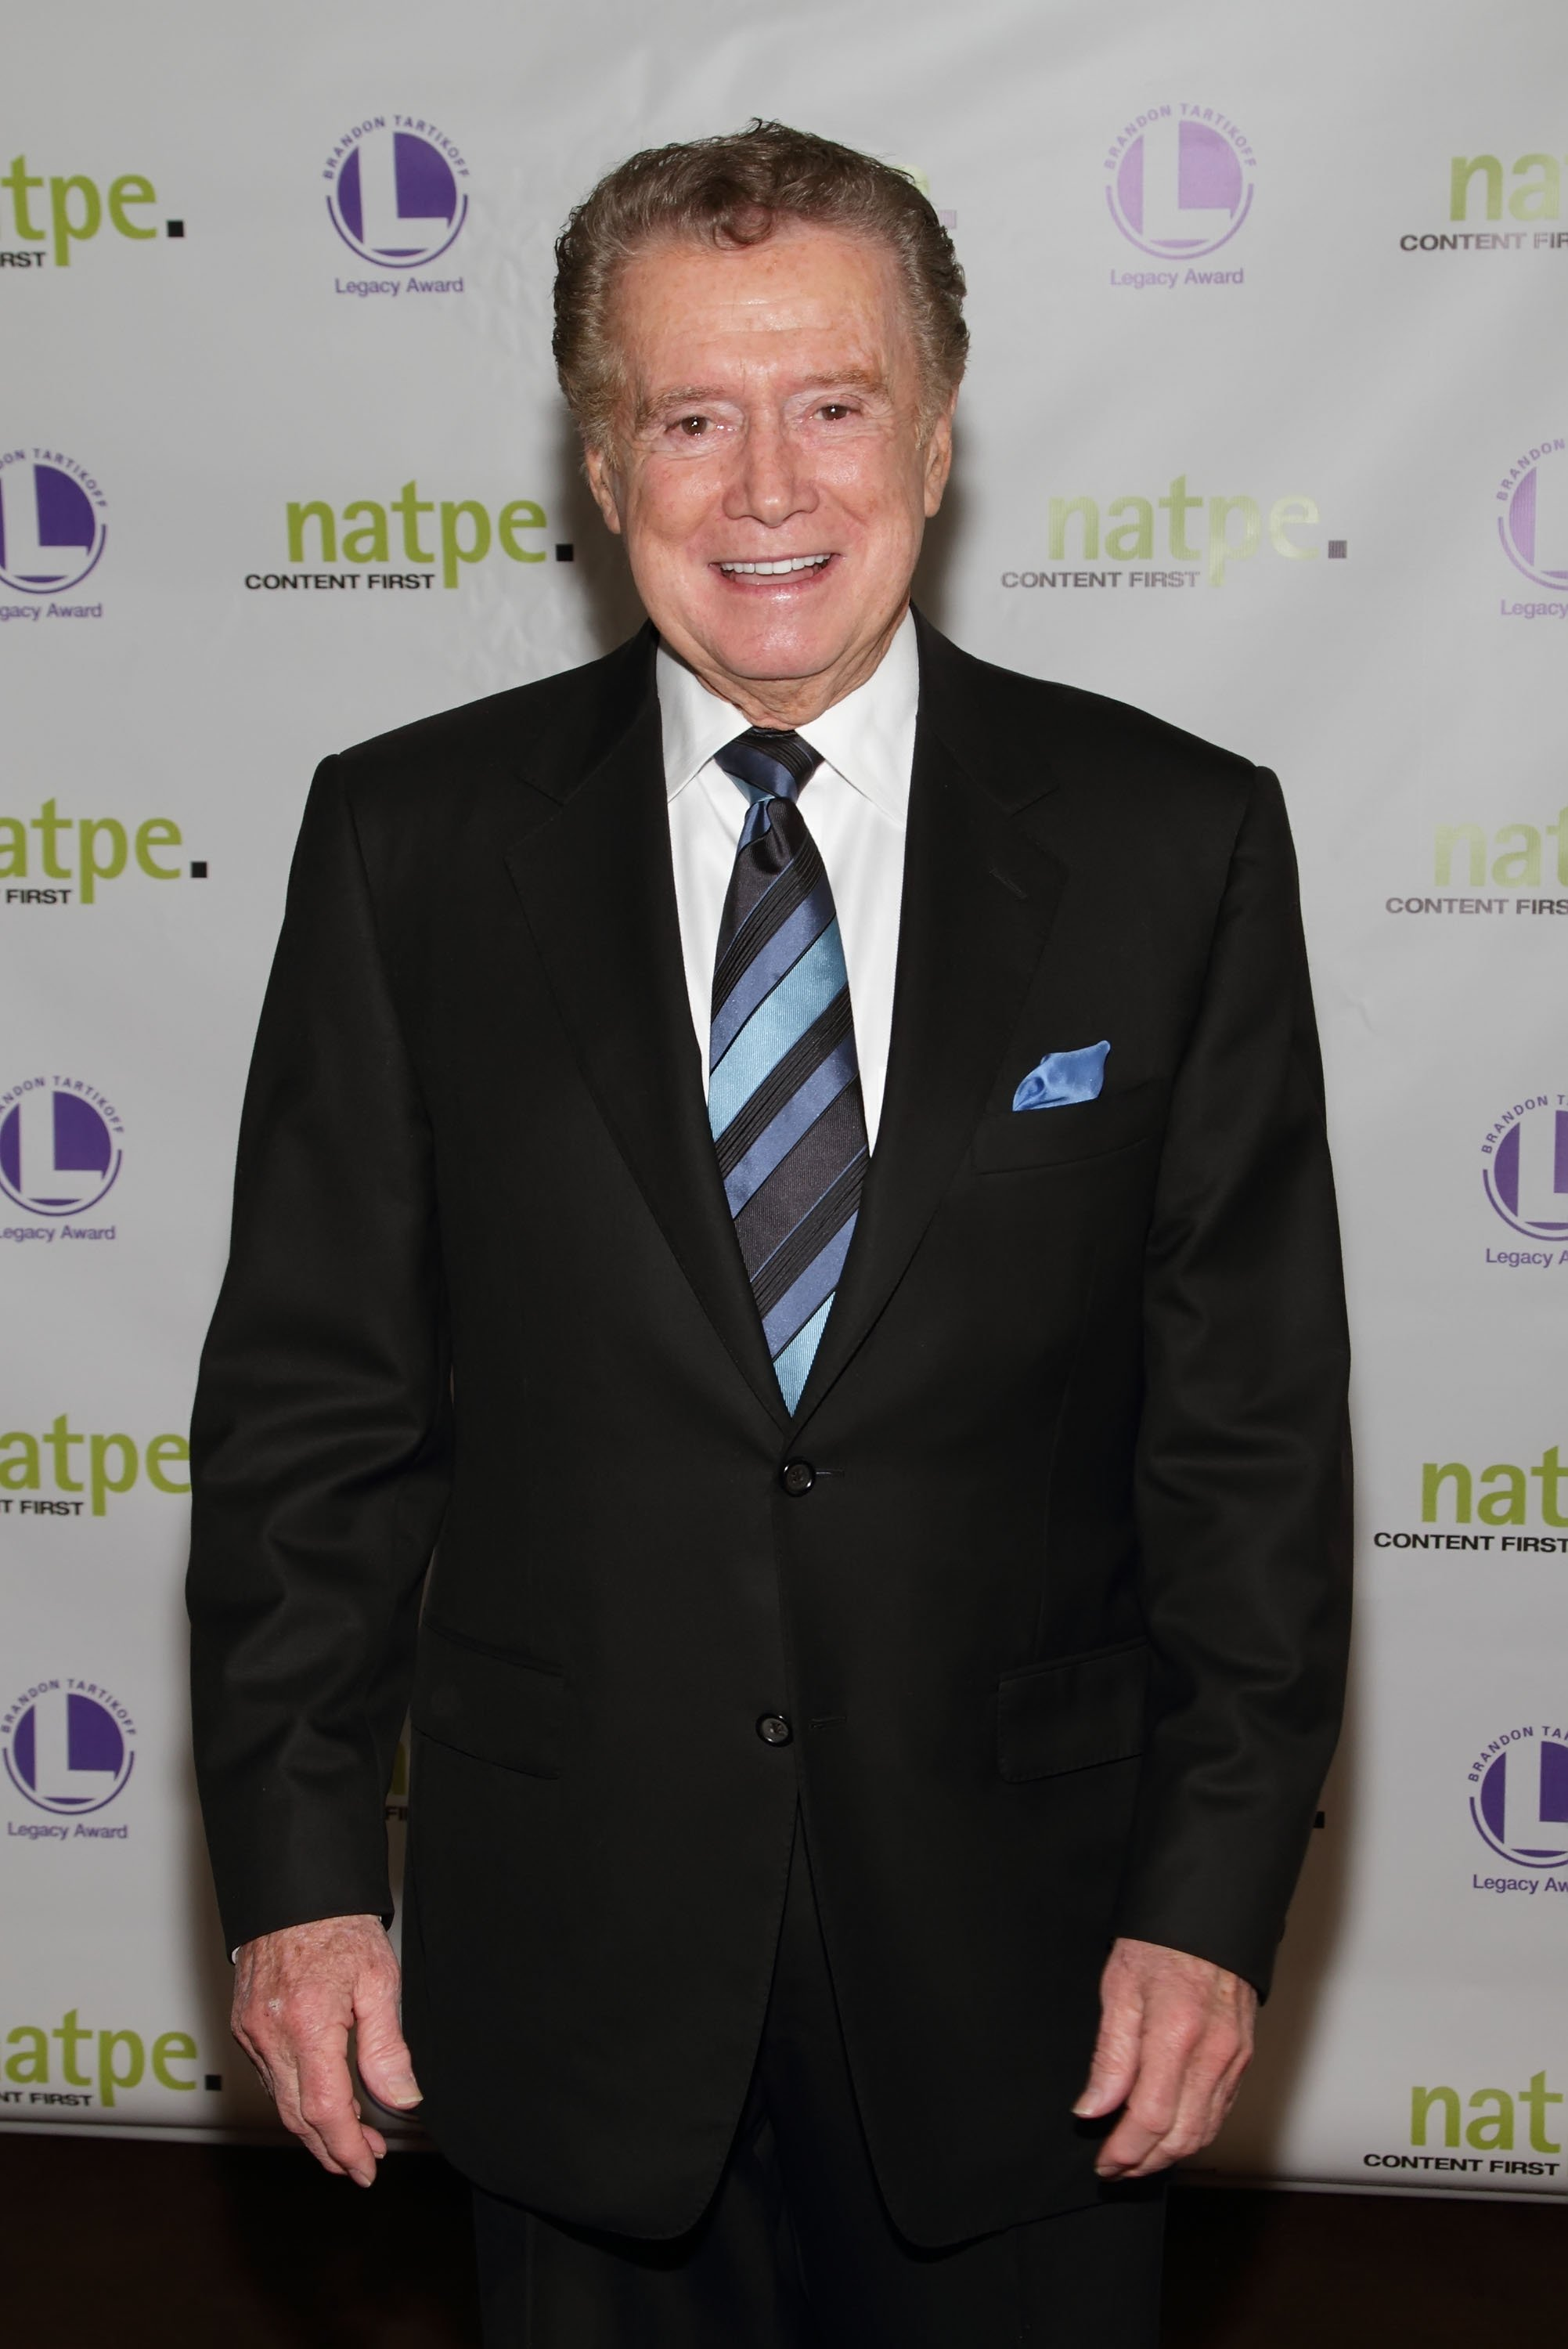 Regis Philbin on January 25, 2011 in Miami Beach, Florida | Source: Getty Images